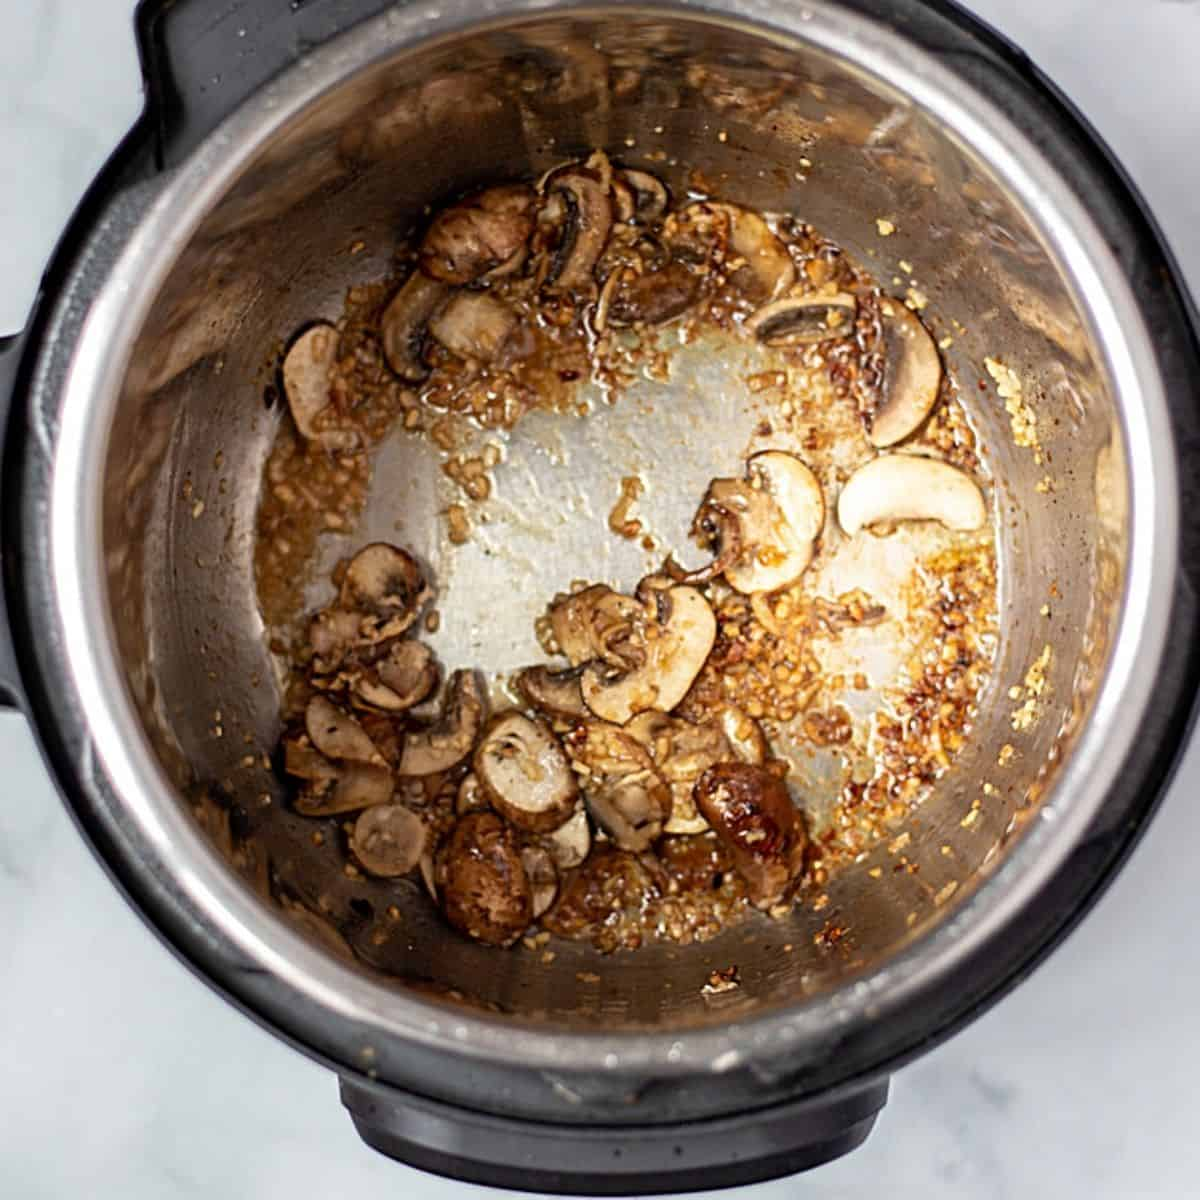 Sauted mushrooms and onions in inner pot.